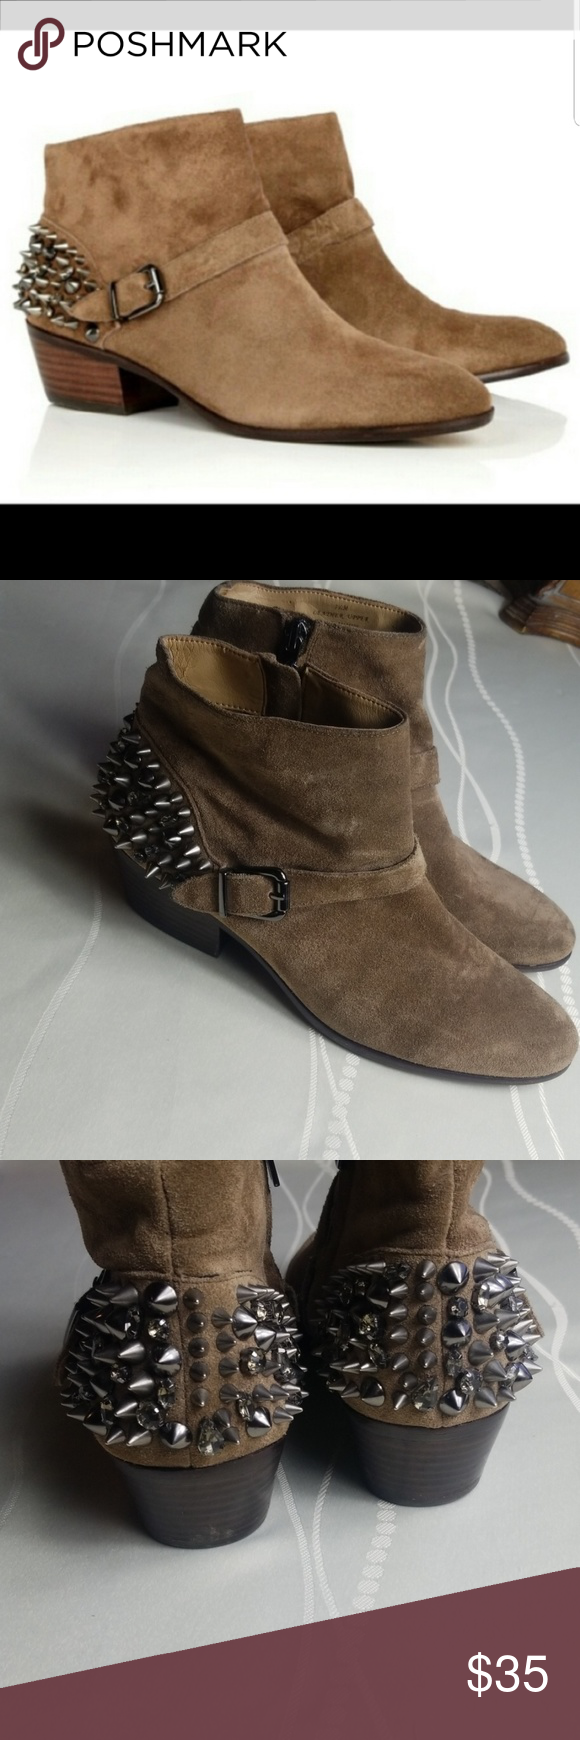 Sam Edelman Pax Booties These suede booties feature pyramid